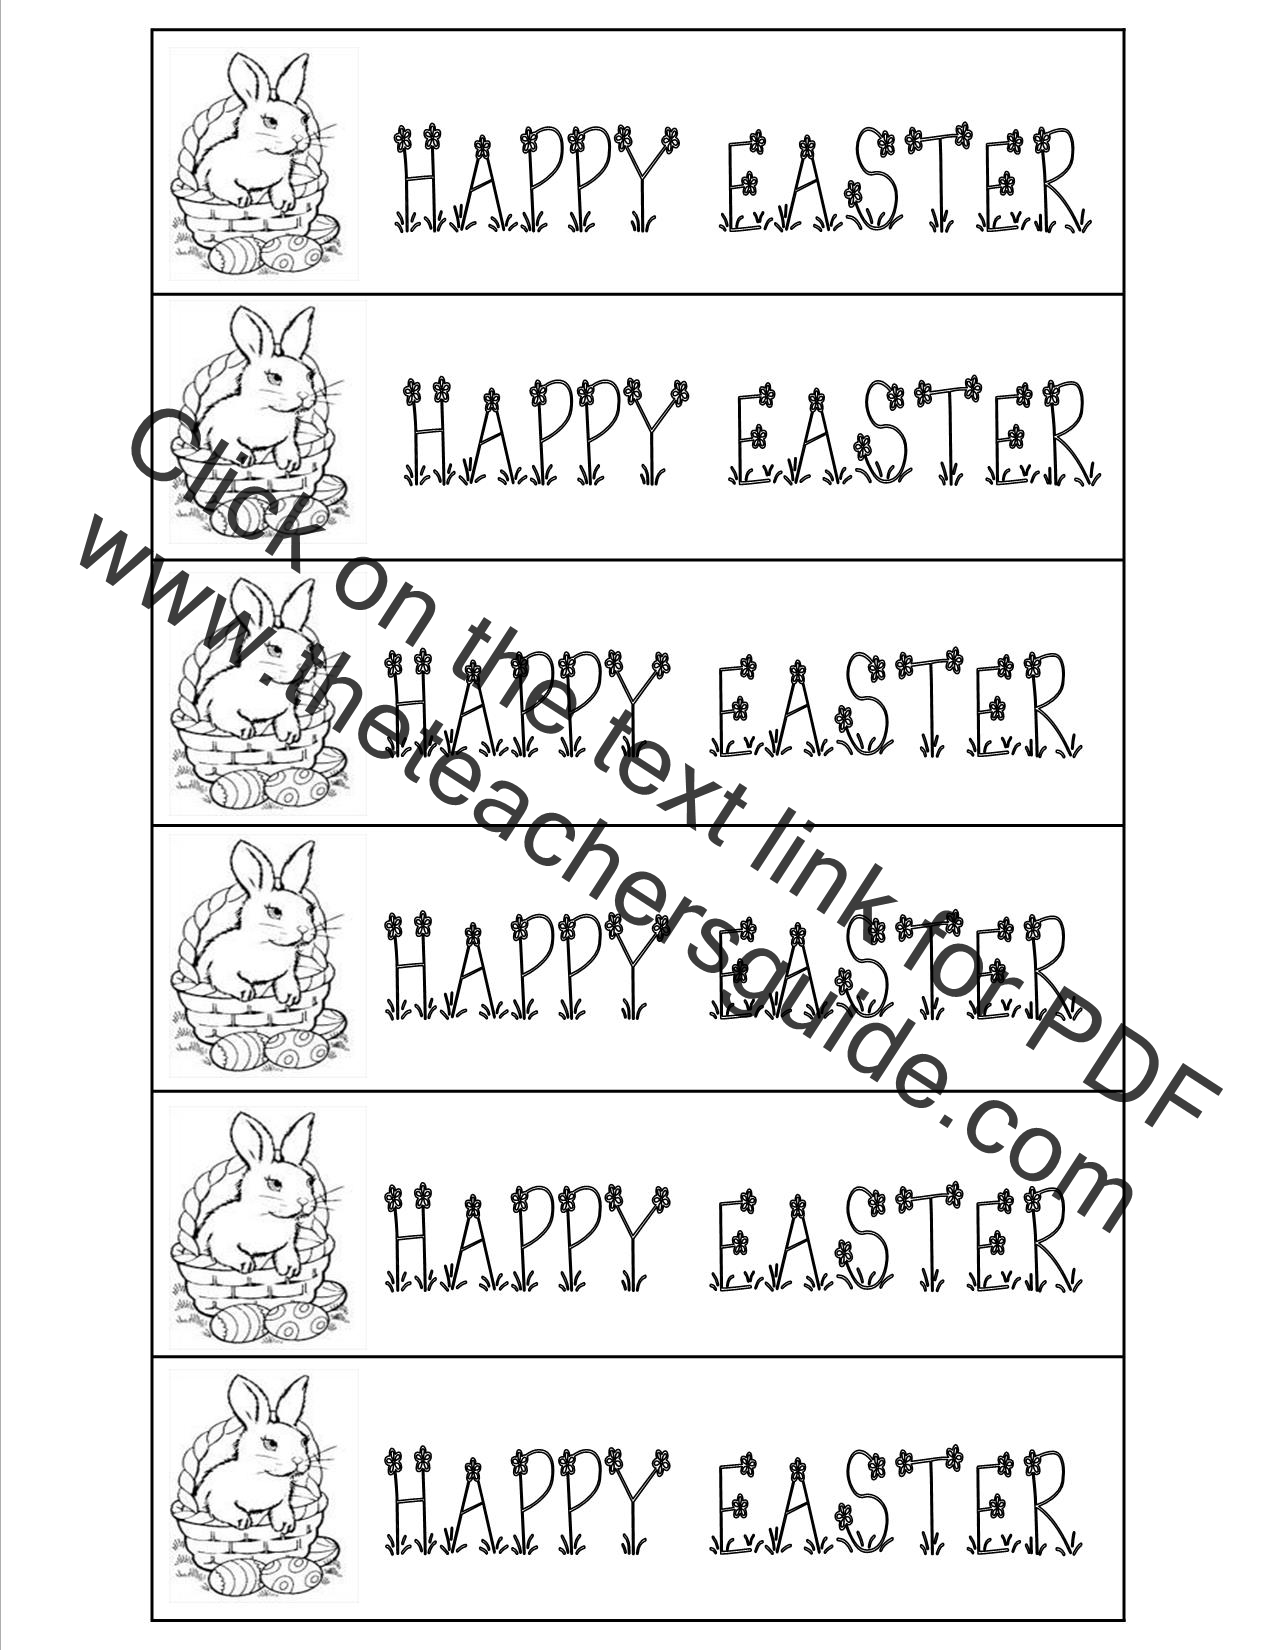 Trust Free Printable Easter Worksheets